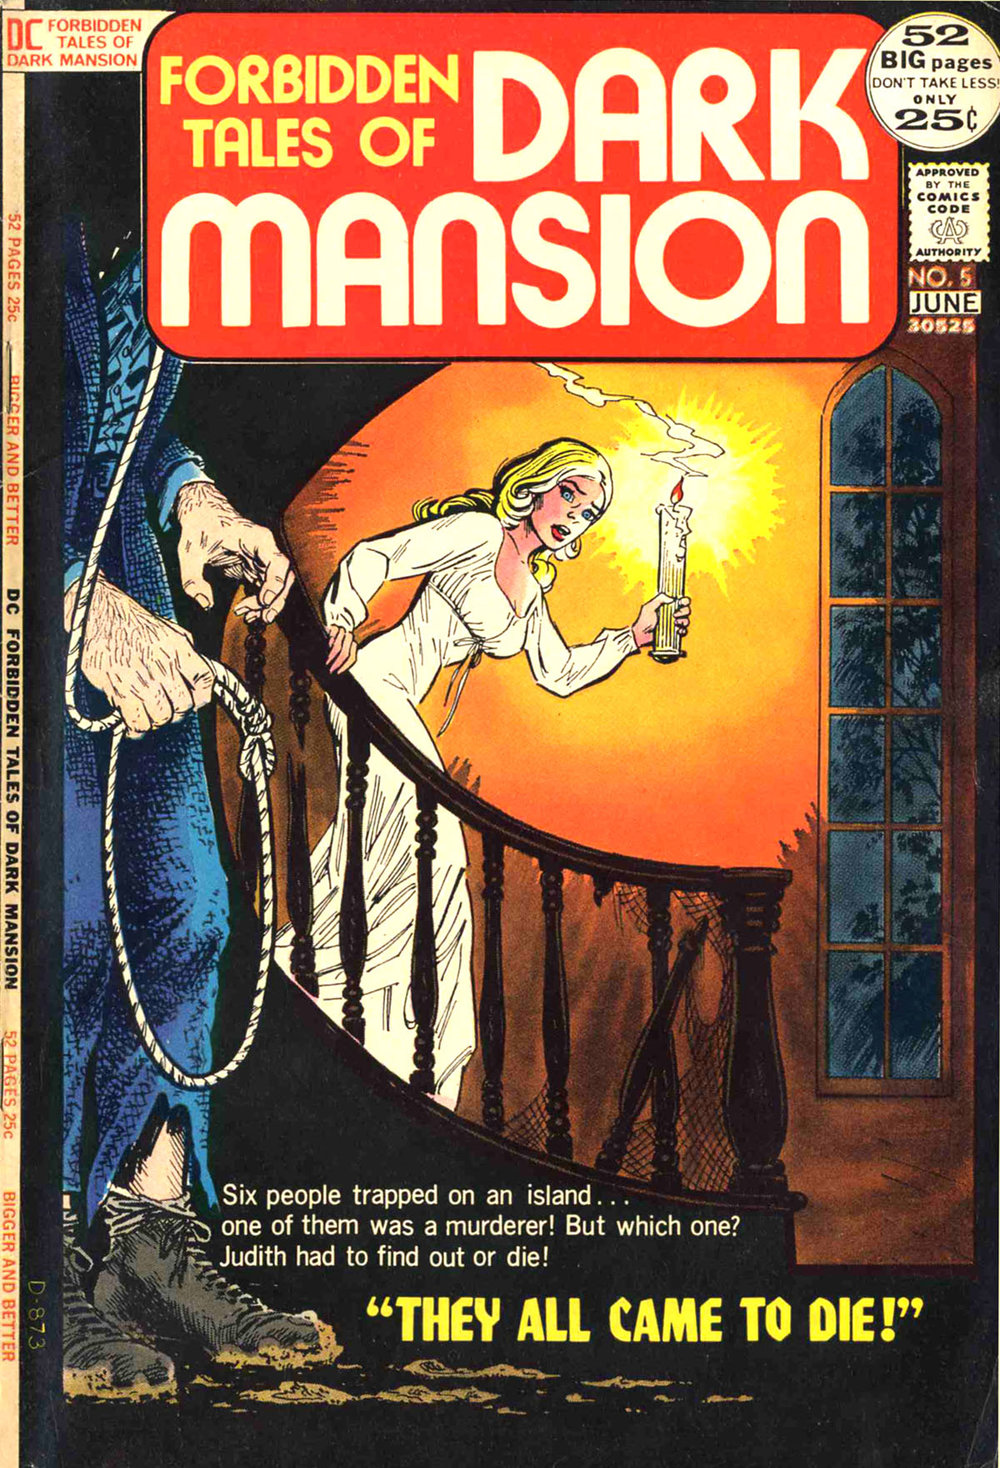 Forbidden Tales of Dark Mansion (1972) #5, cover by Nick Cardy.